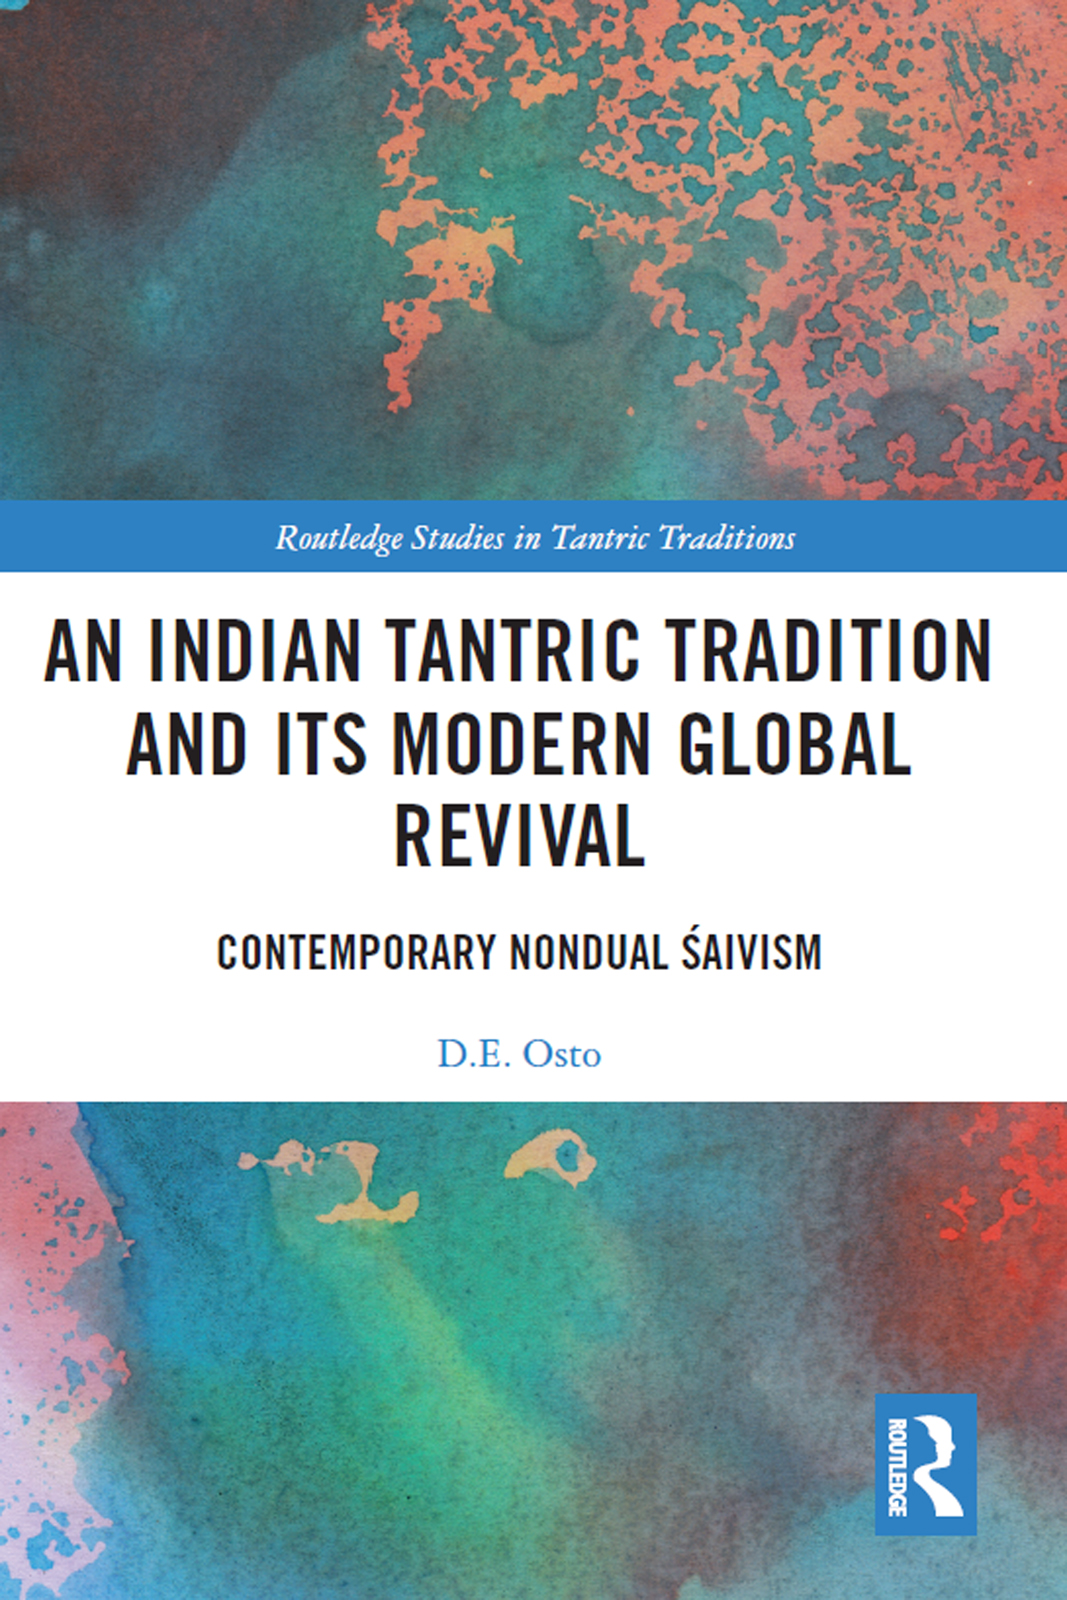 An Indian Tantric Tradition and Its Modern Global Revival: Contemporary Nondual Śaivism book cover